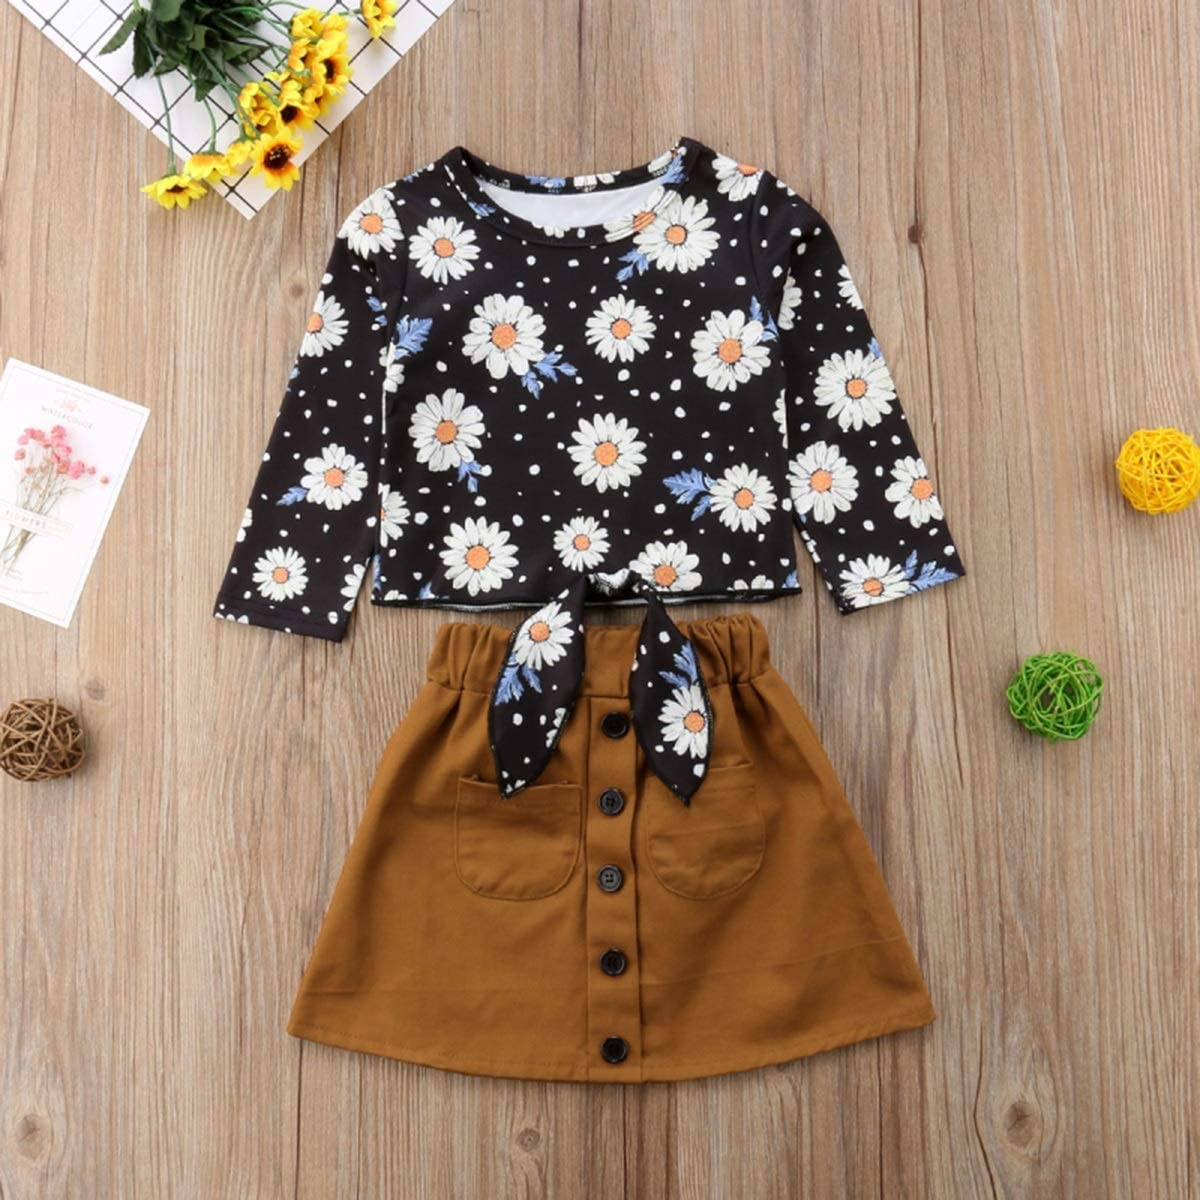 Skirt Outfits Set puseky 2pcs//Set Baby Girl Kids Toddler Floral Long Sleeve Top